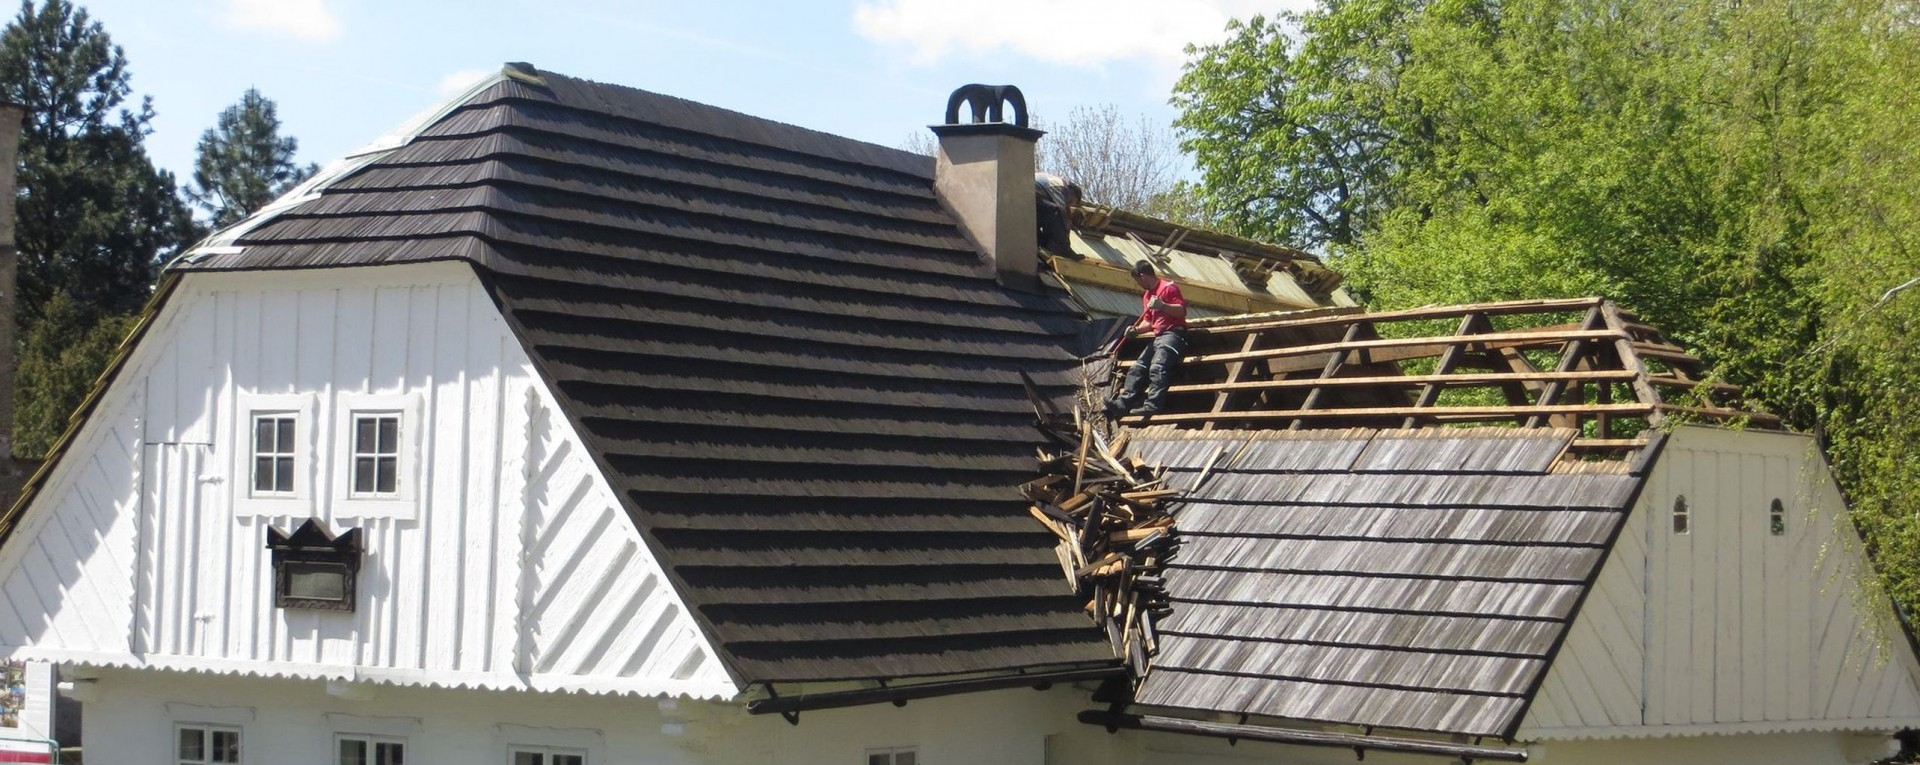 Hurricane proof your roof